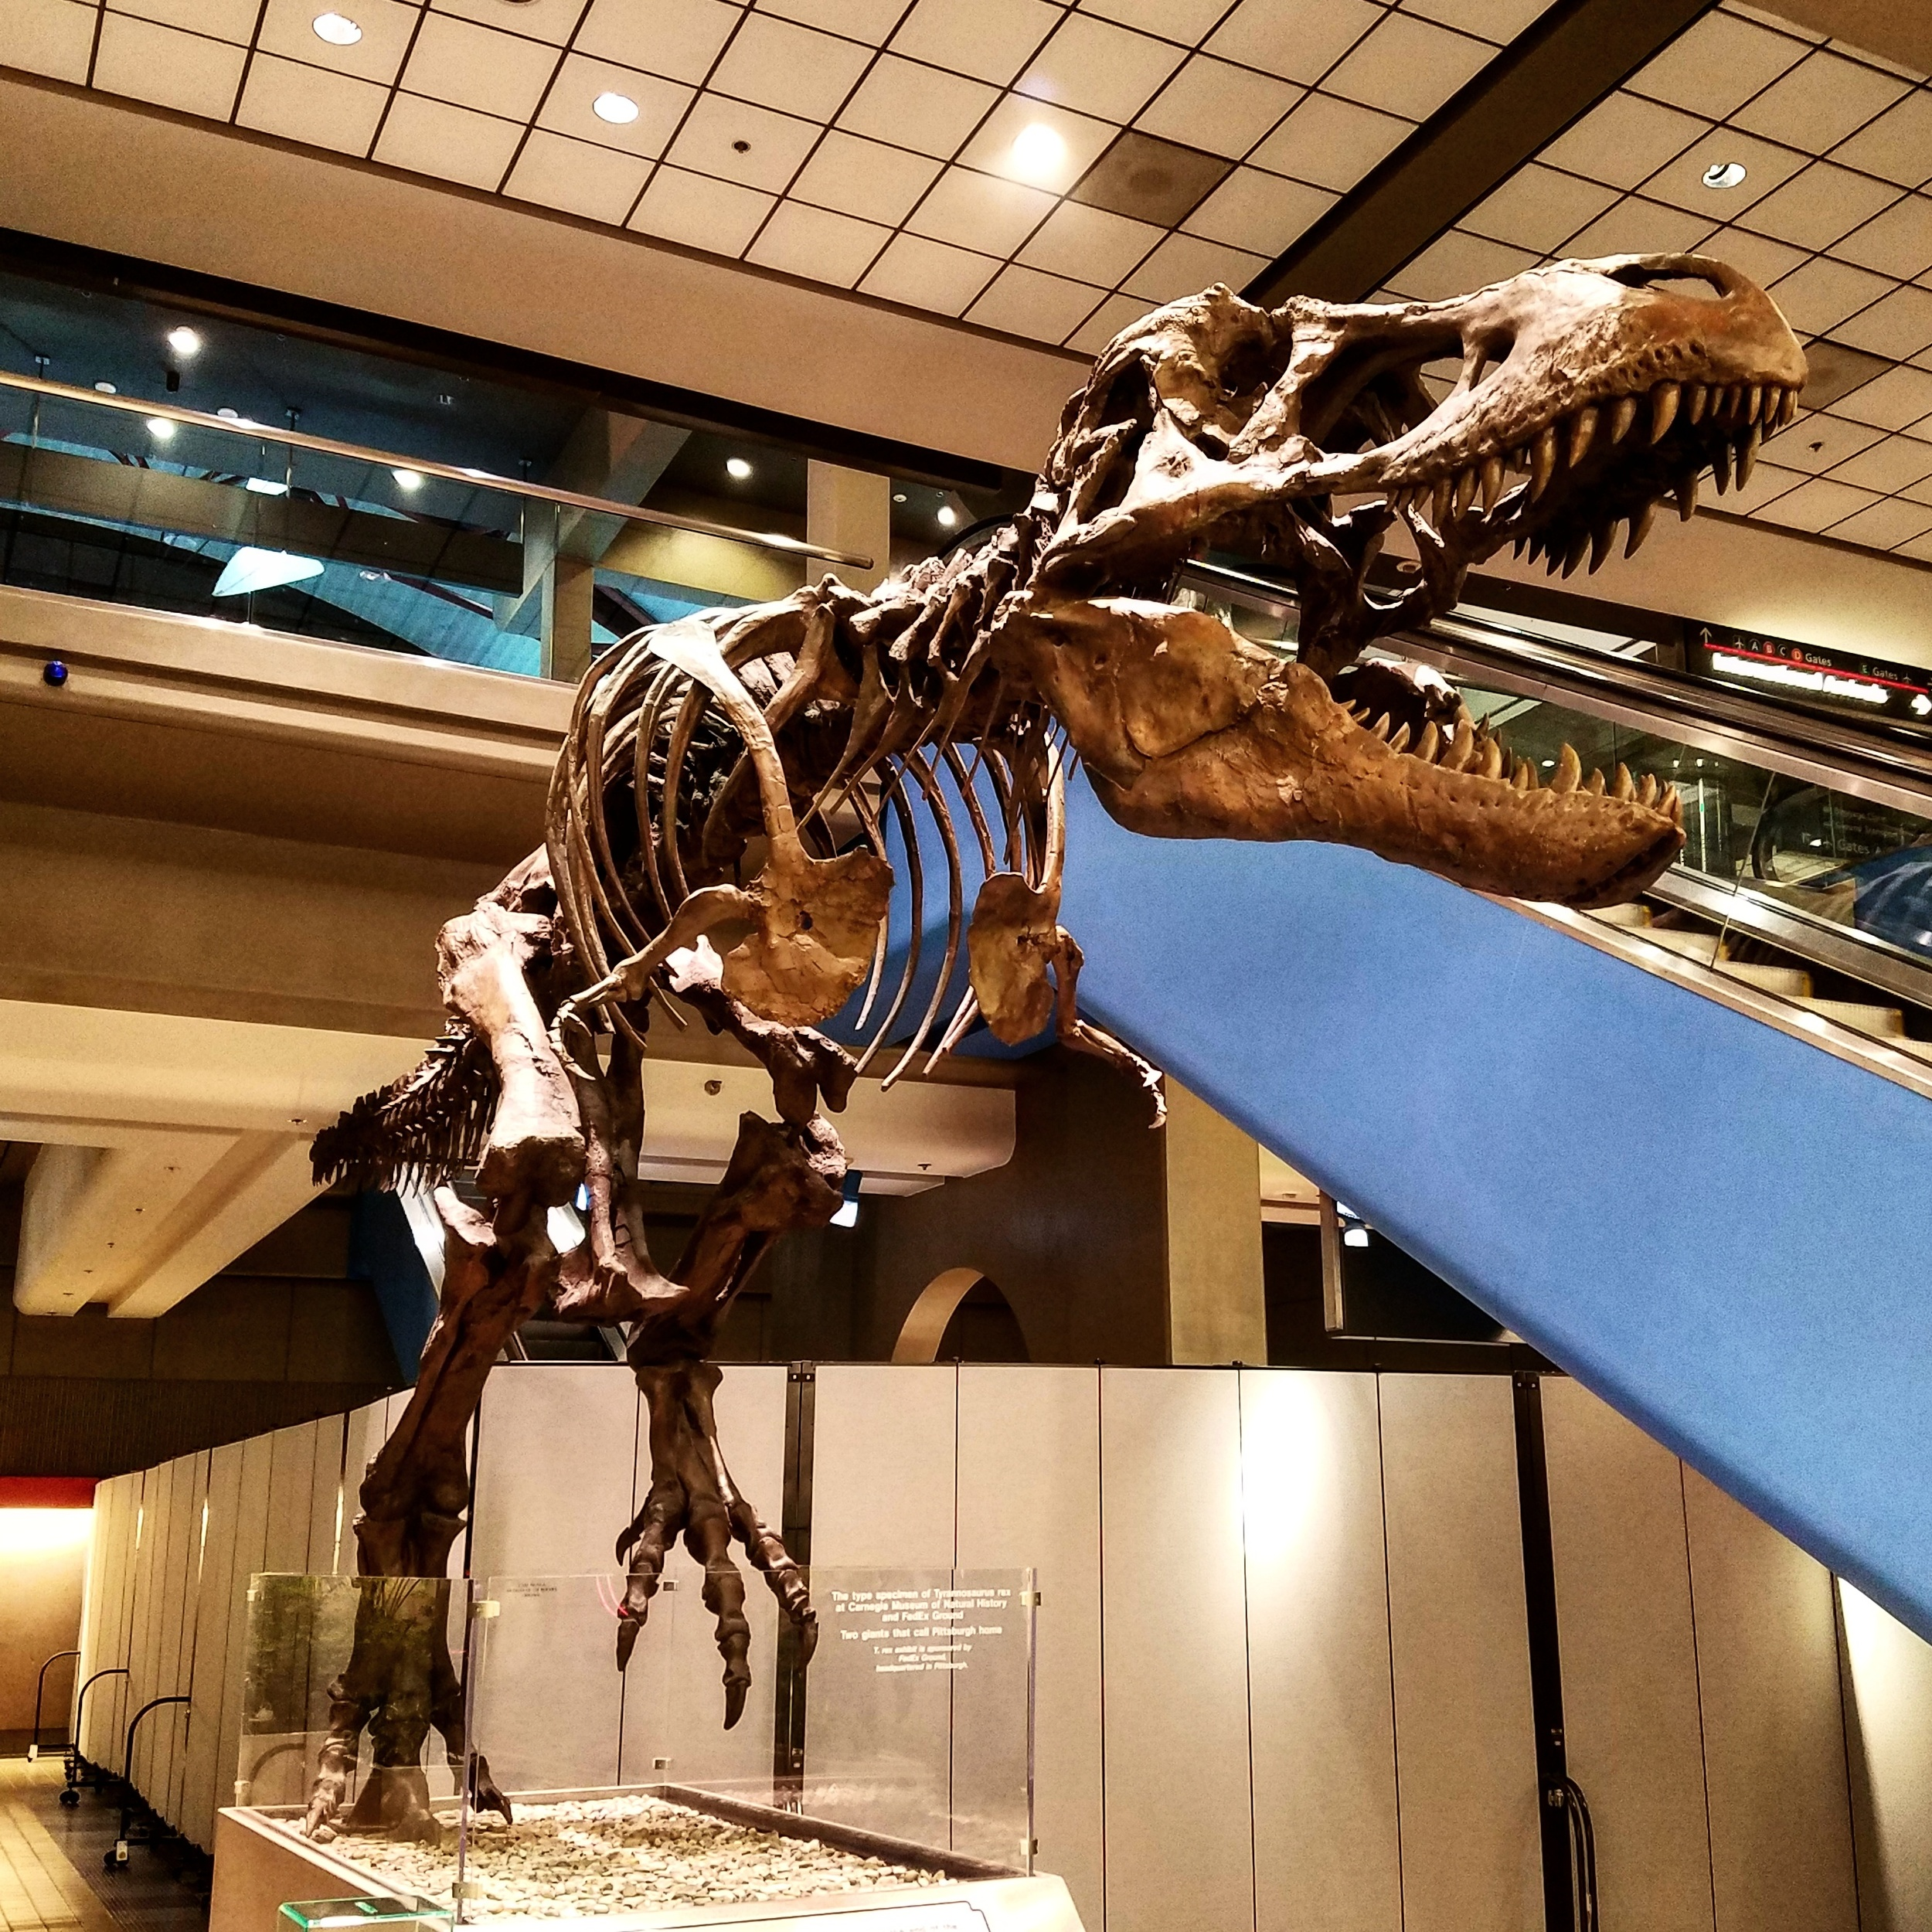 T-rex in Pittsburgh International Airport. April 2016.